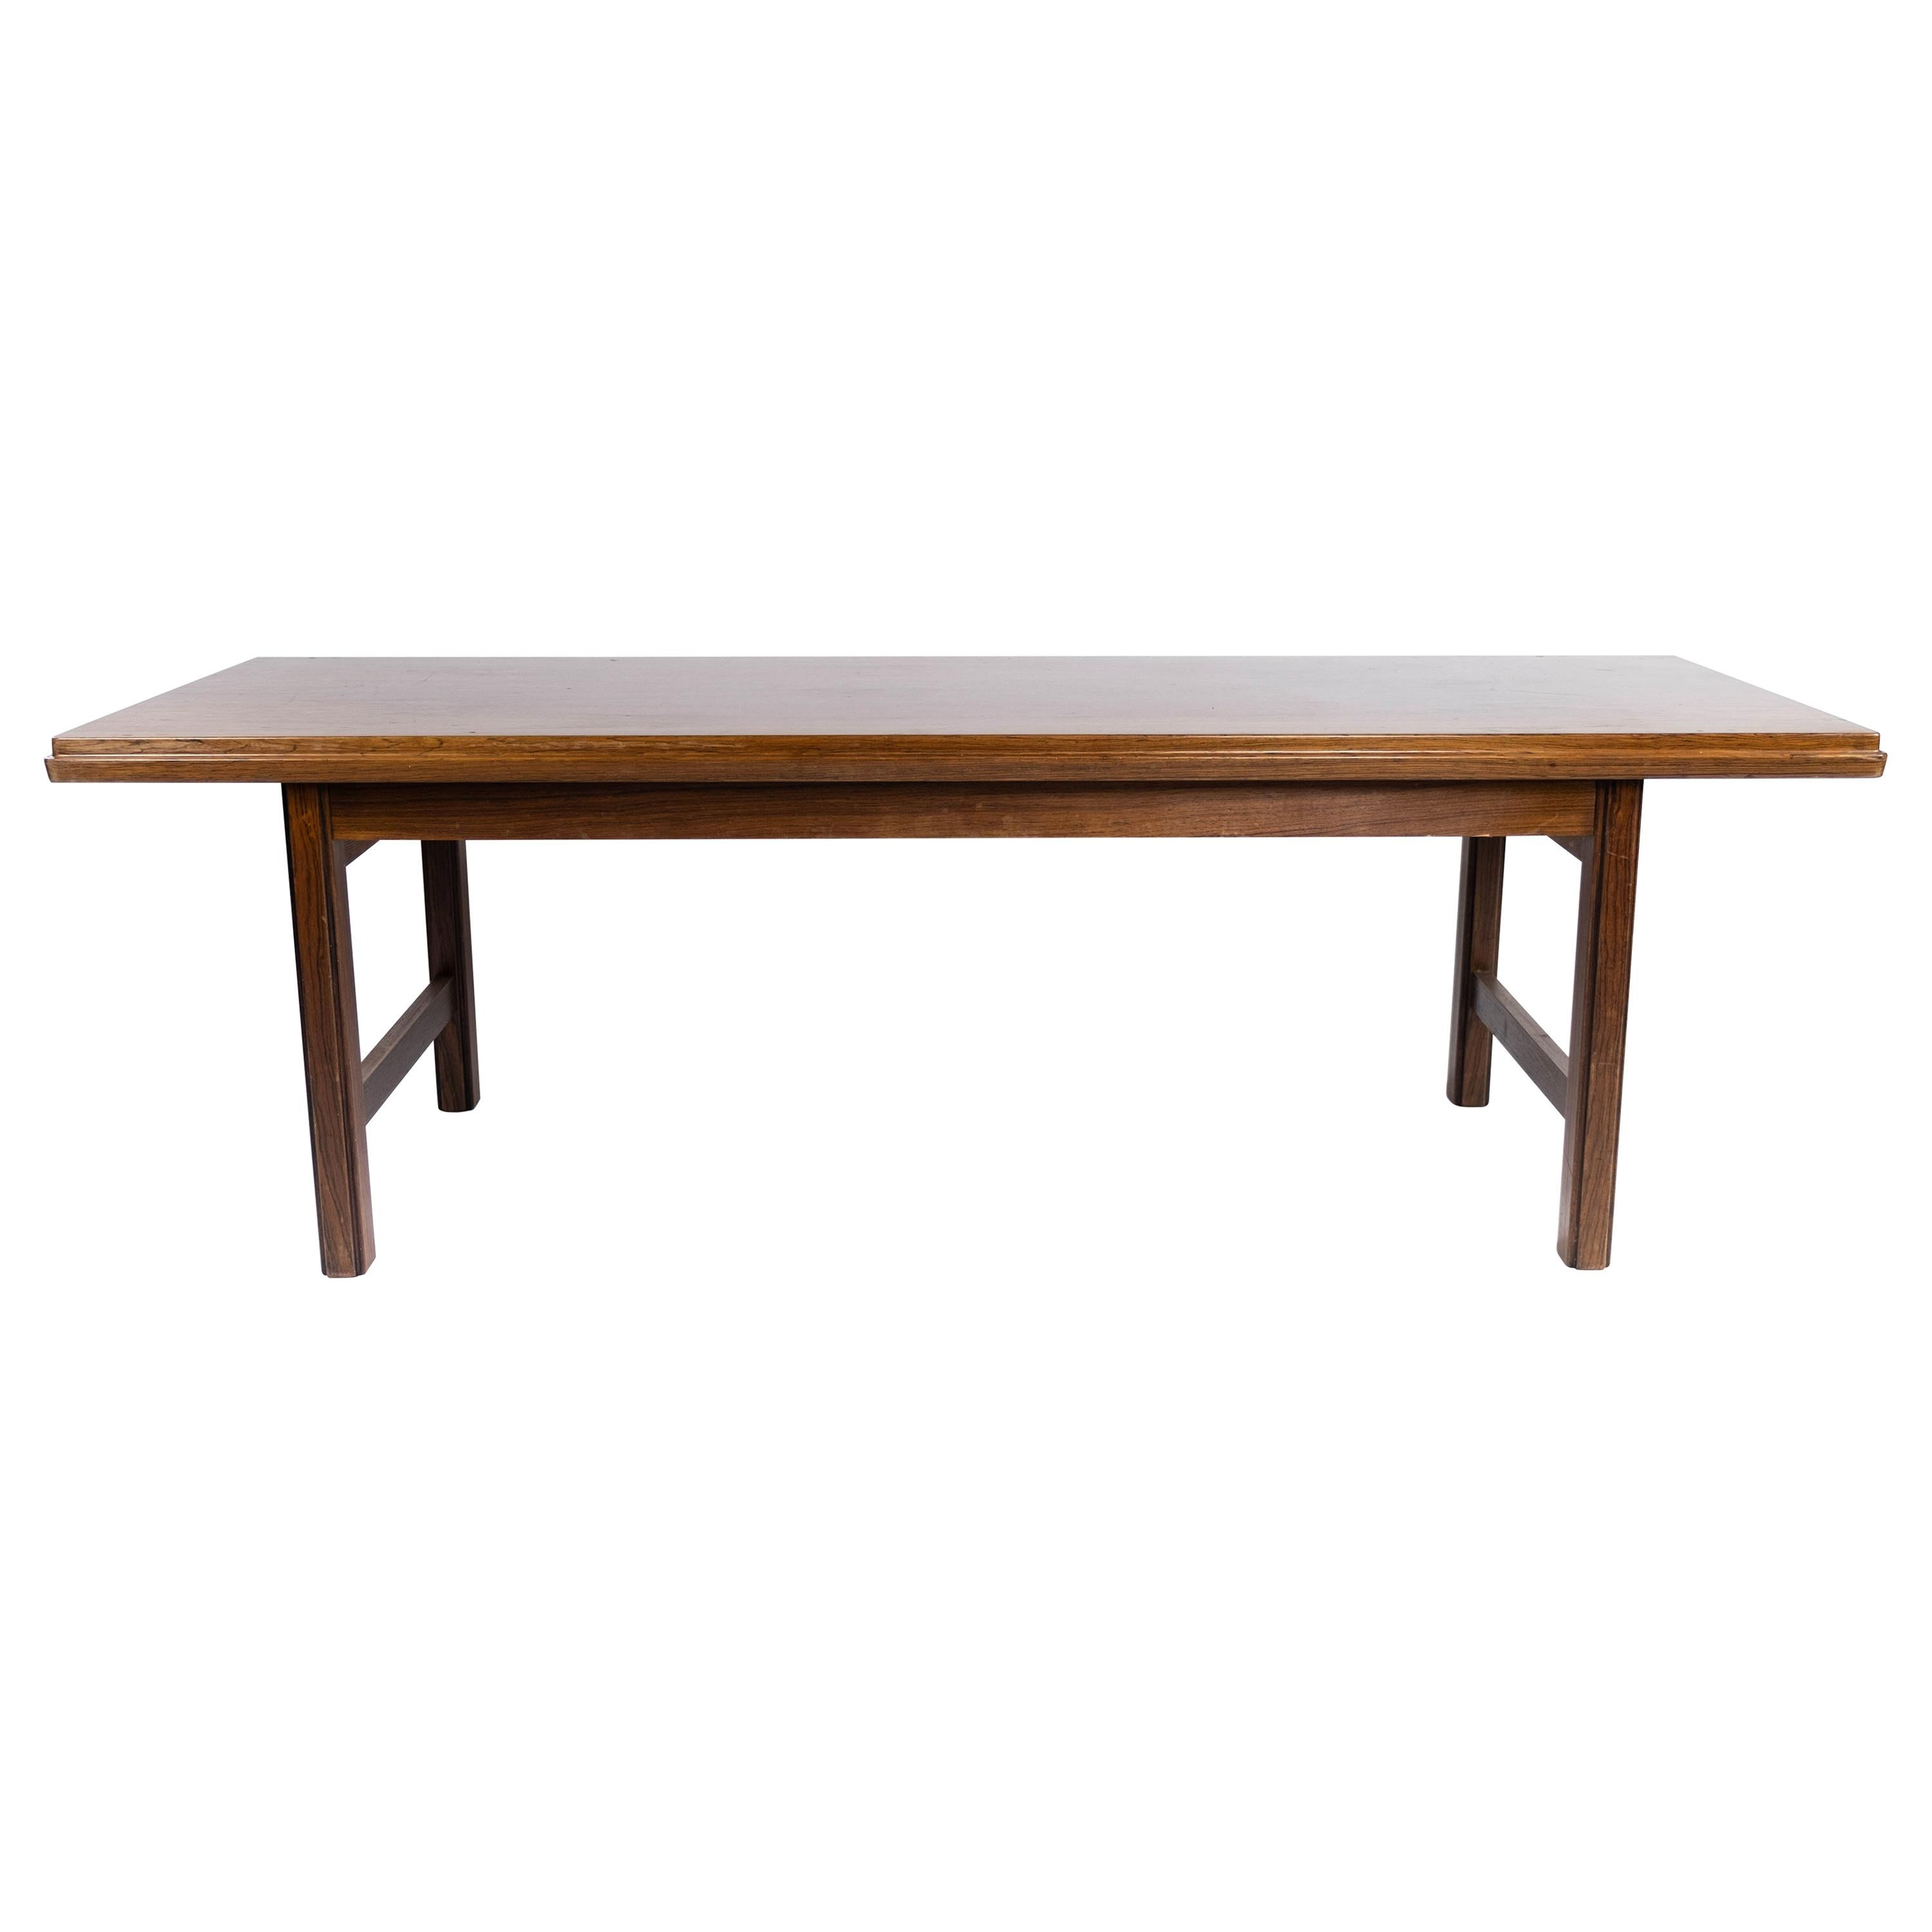 Coffee Table in Rosewood Designed by Edmund Jørgensen and from the 1960s